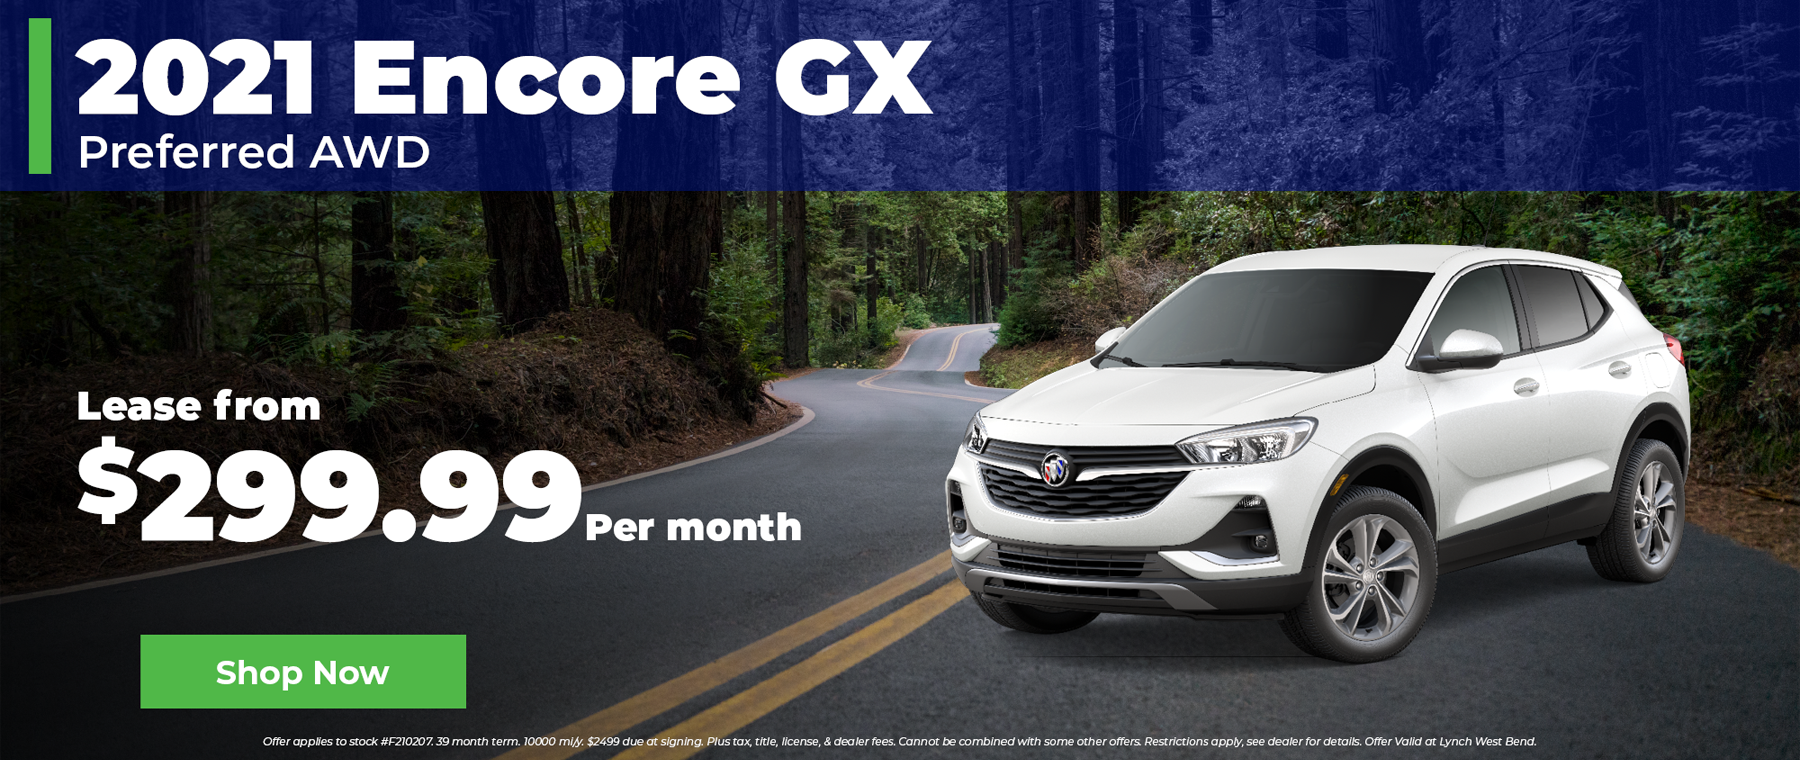 2021 Buick Encore GX $299 per month in West Bend Wisconsin